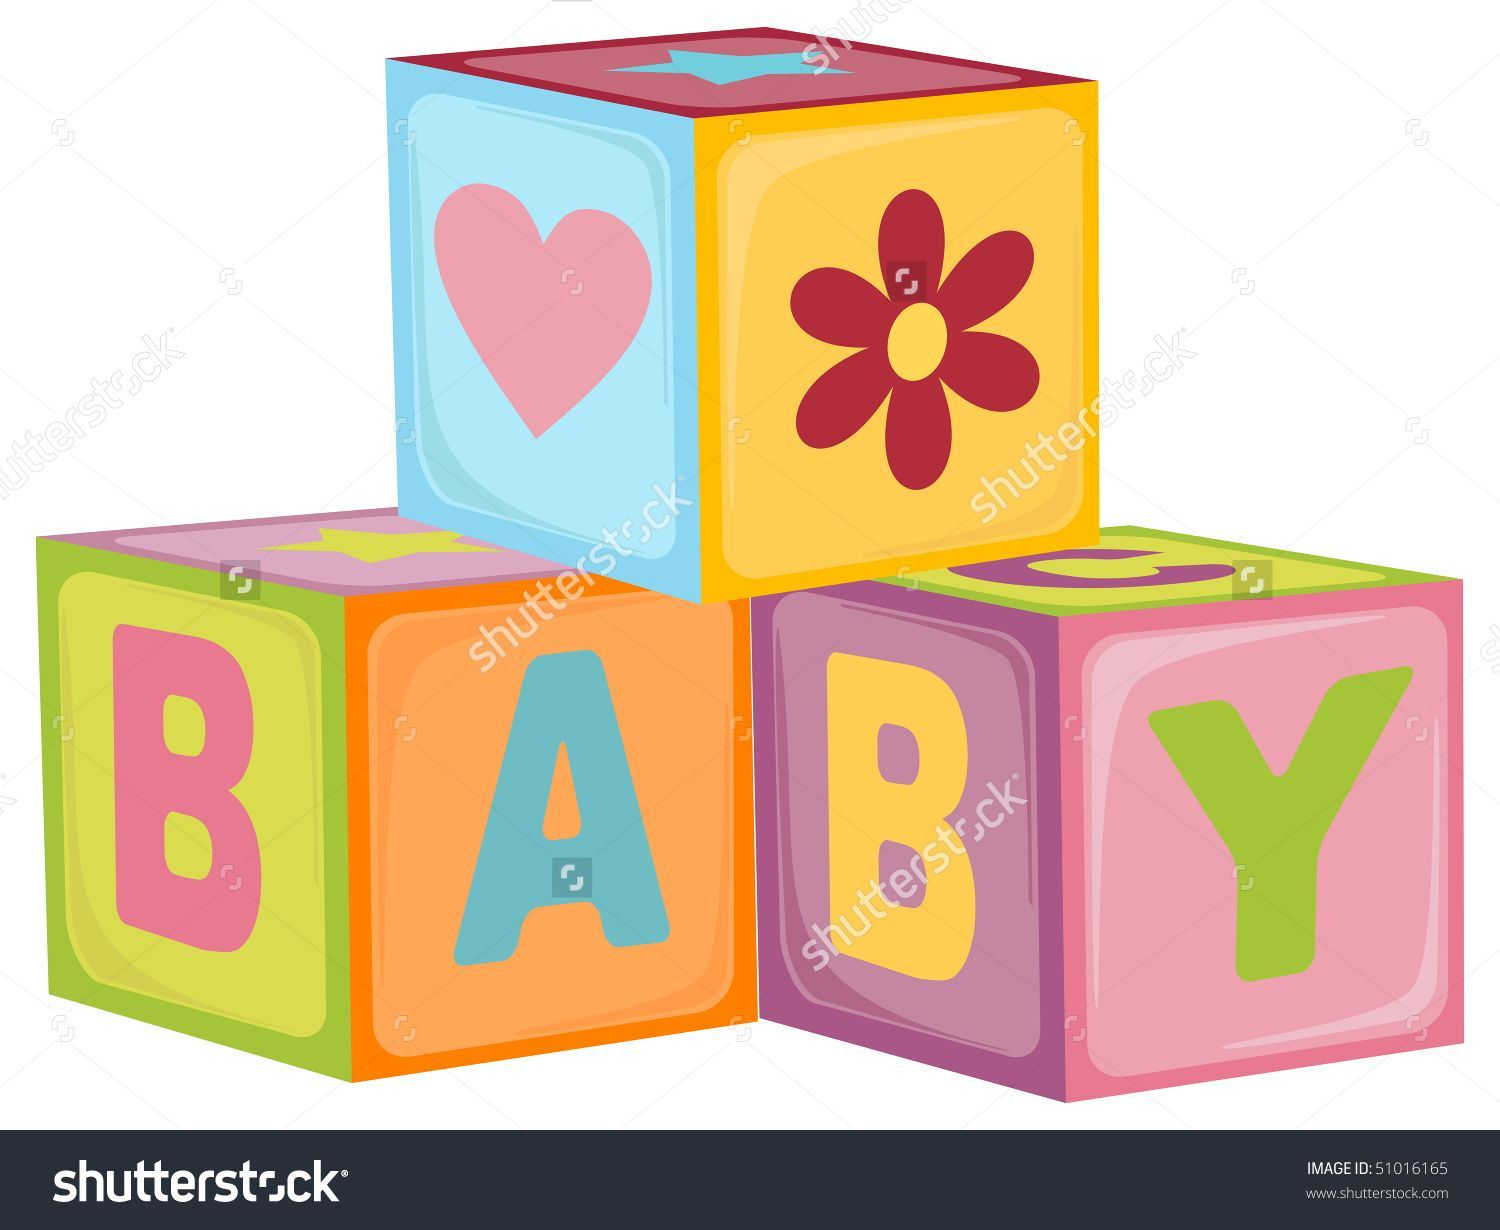 Baby toys clipart 4 » Clipart Portal.